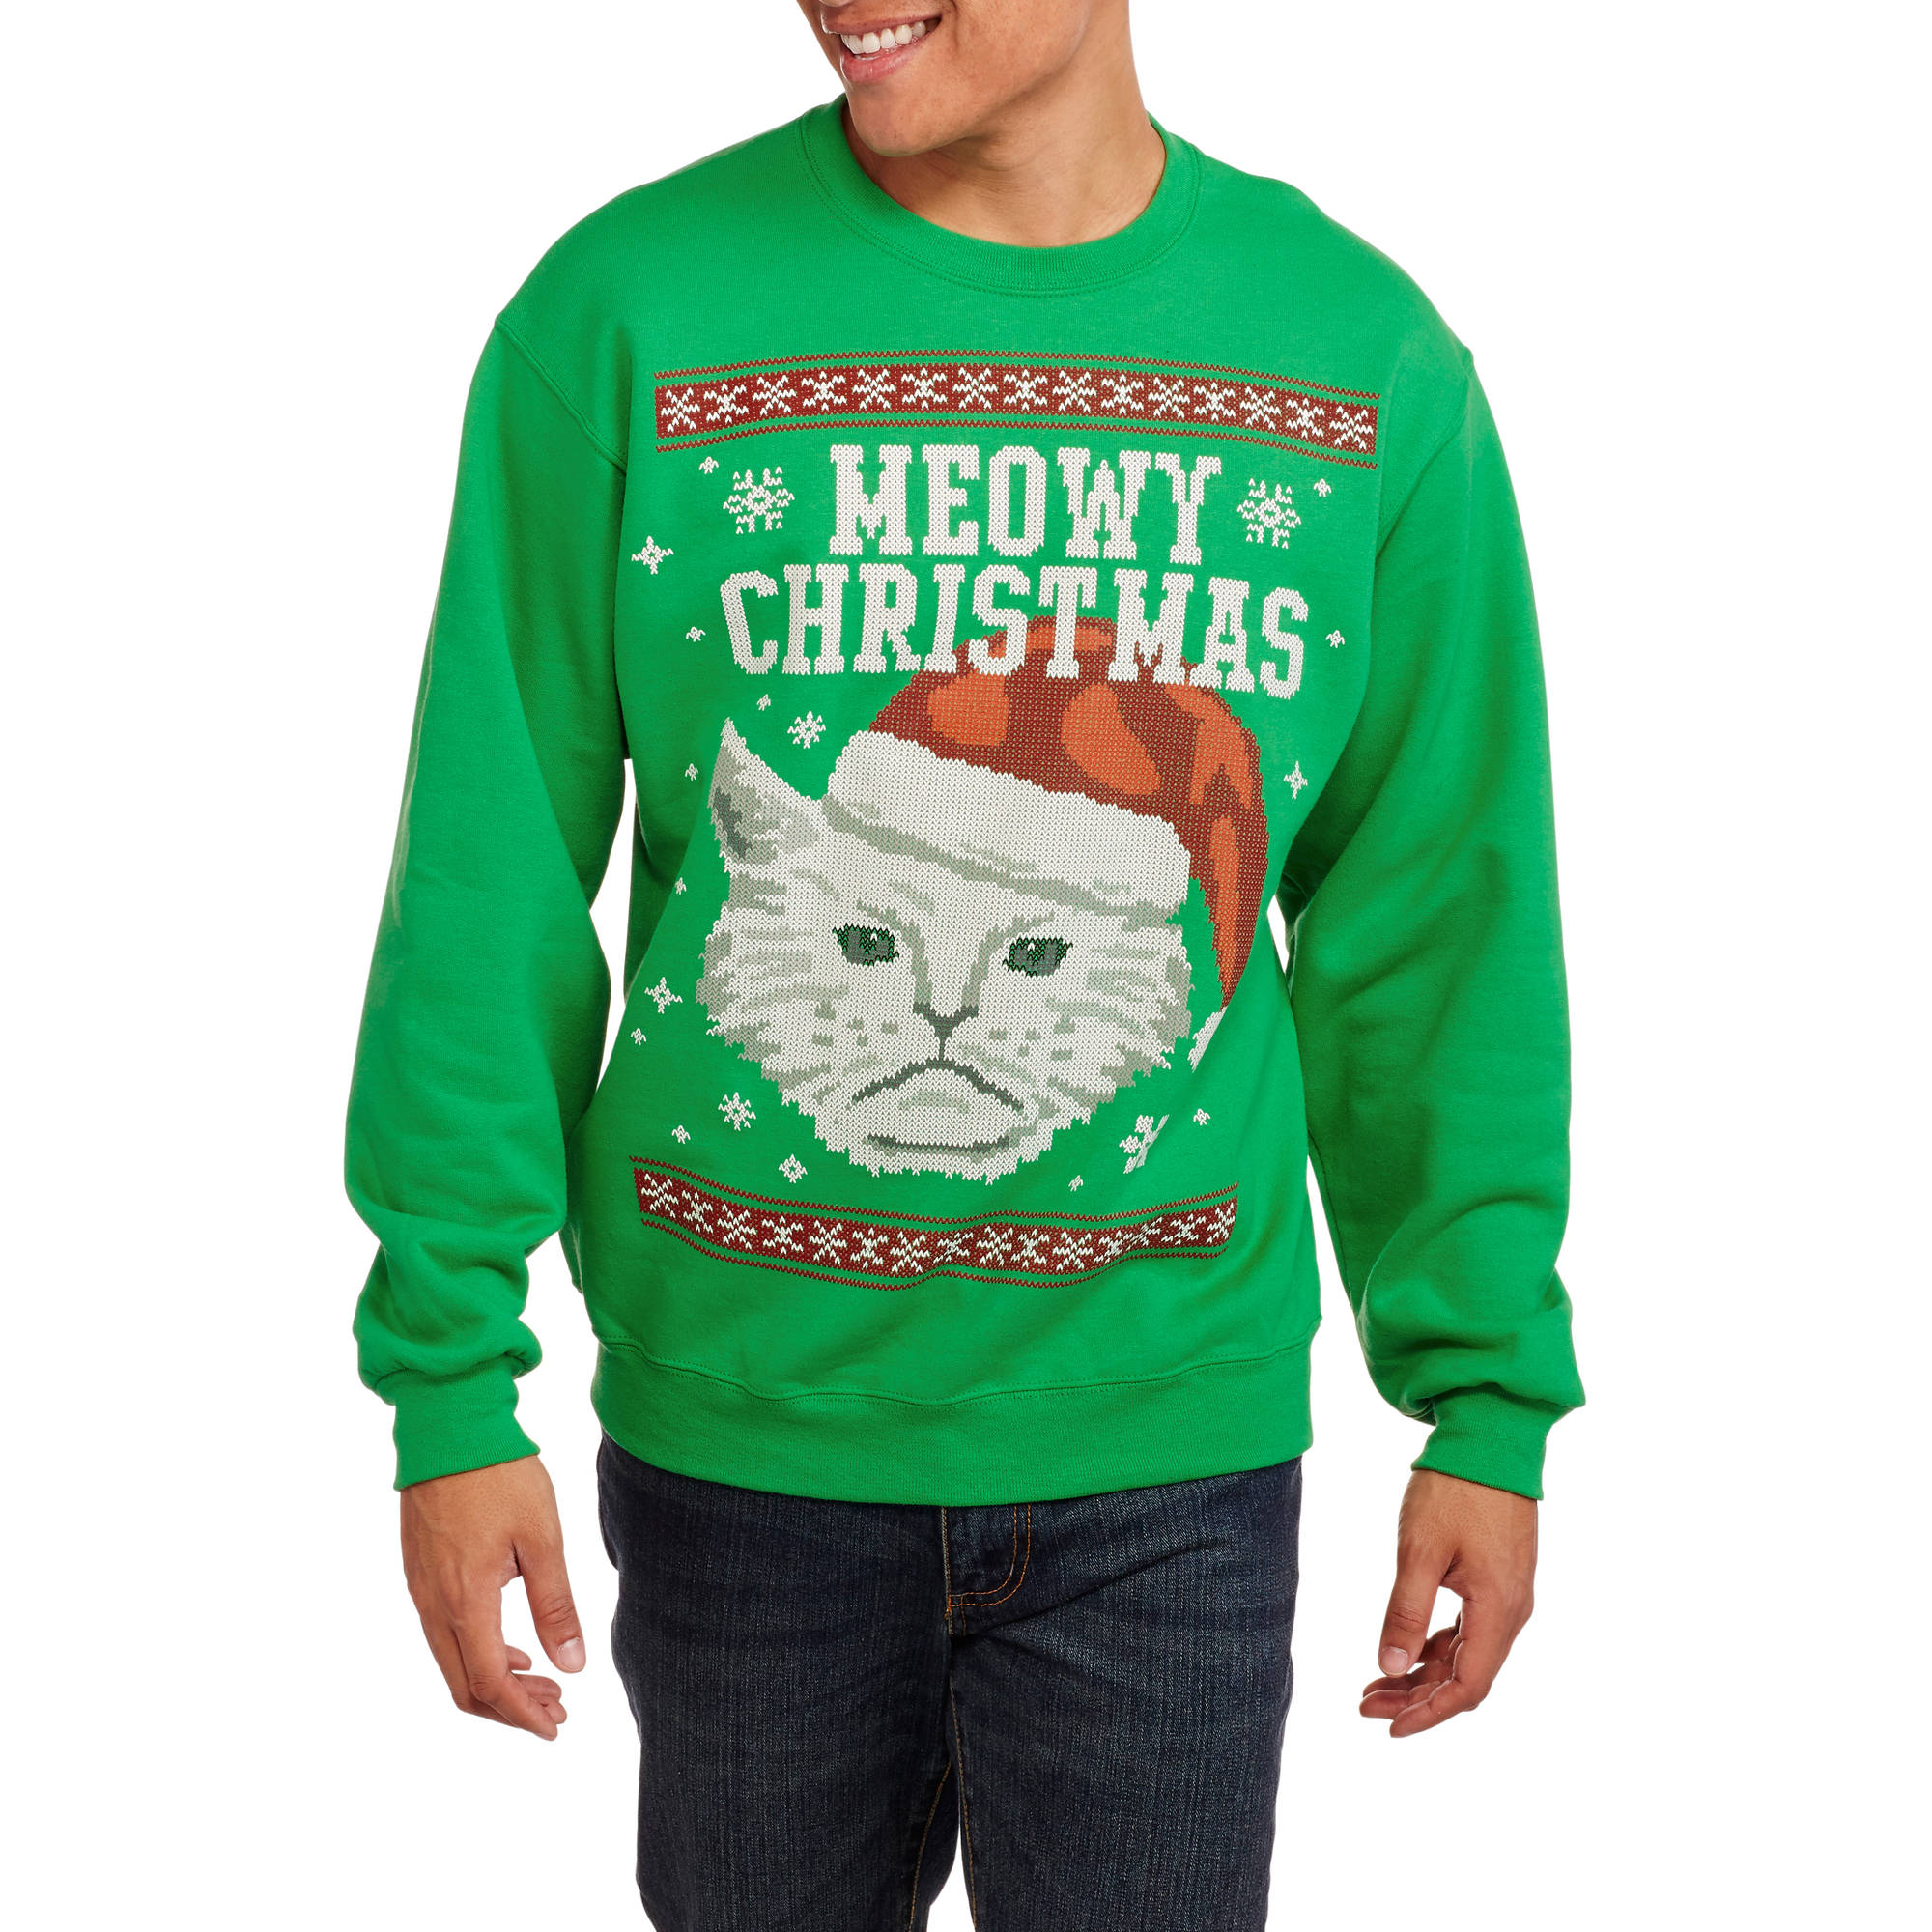 Meowy Christmas Men's Graphic Christmas Fleece